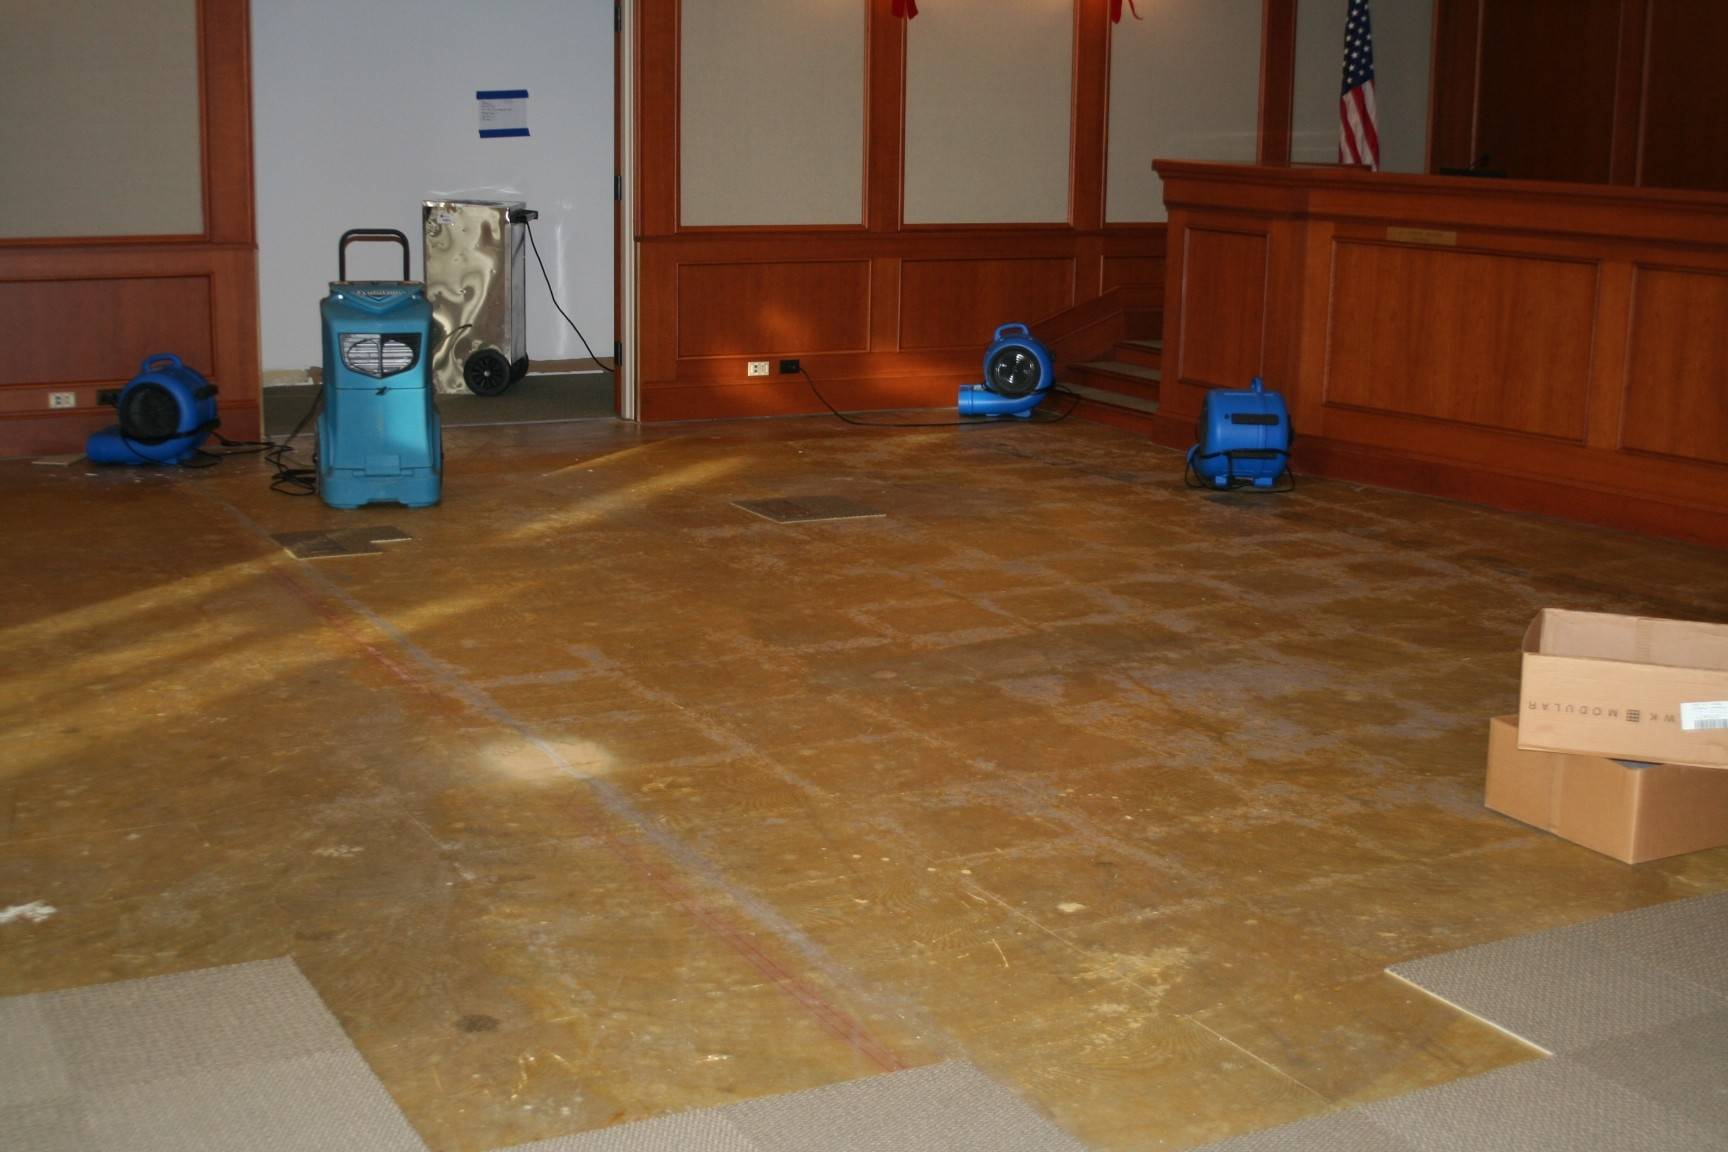 Portions of carpet in the Mount Prospect village board chambers had to be torn out last month after a fire sprinkler failed, sending water into the room and other parts of village hall. Repairs are expected to cost the village about $171,000, though officials hope to recoup some from insurance.